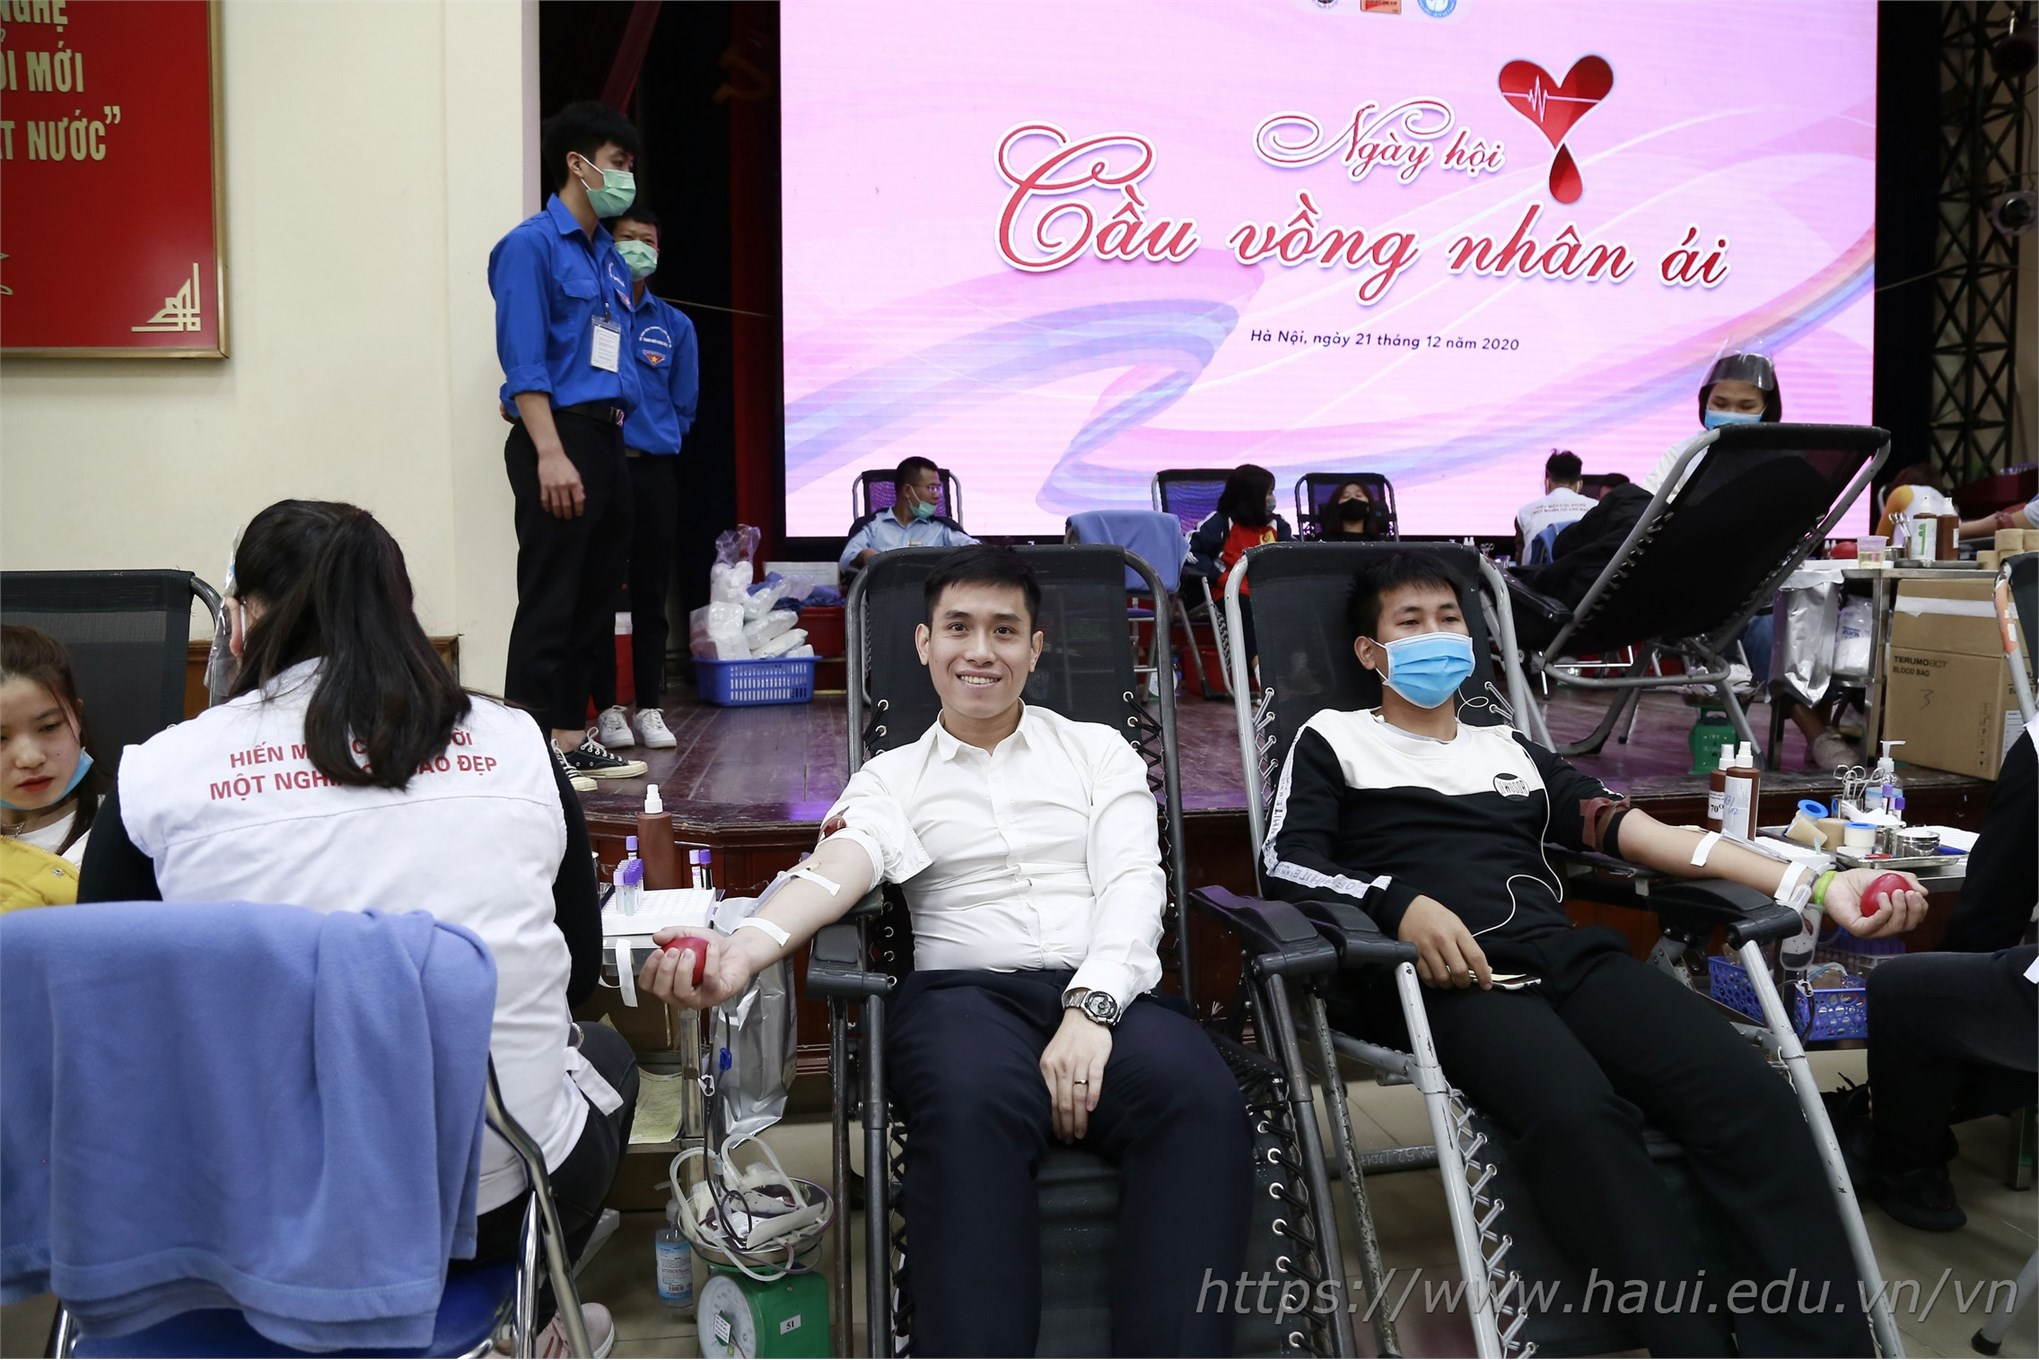 HaUI staff and students donate 521 blood units at Voluntary Blood Donation Day 2020